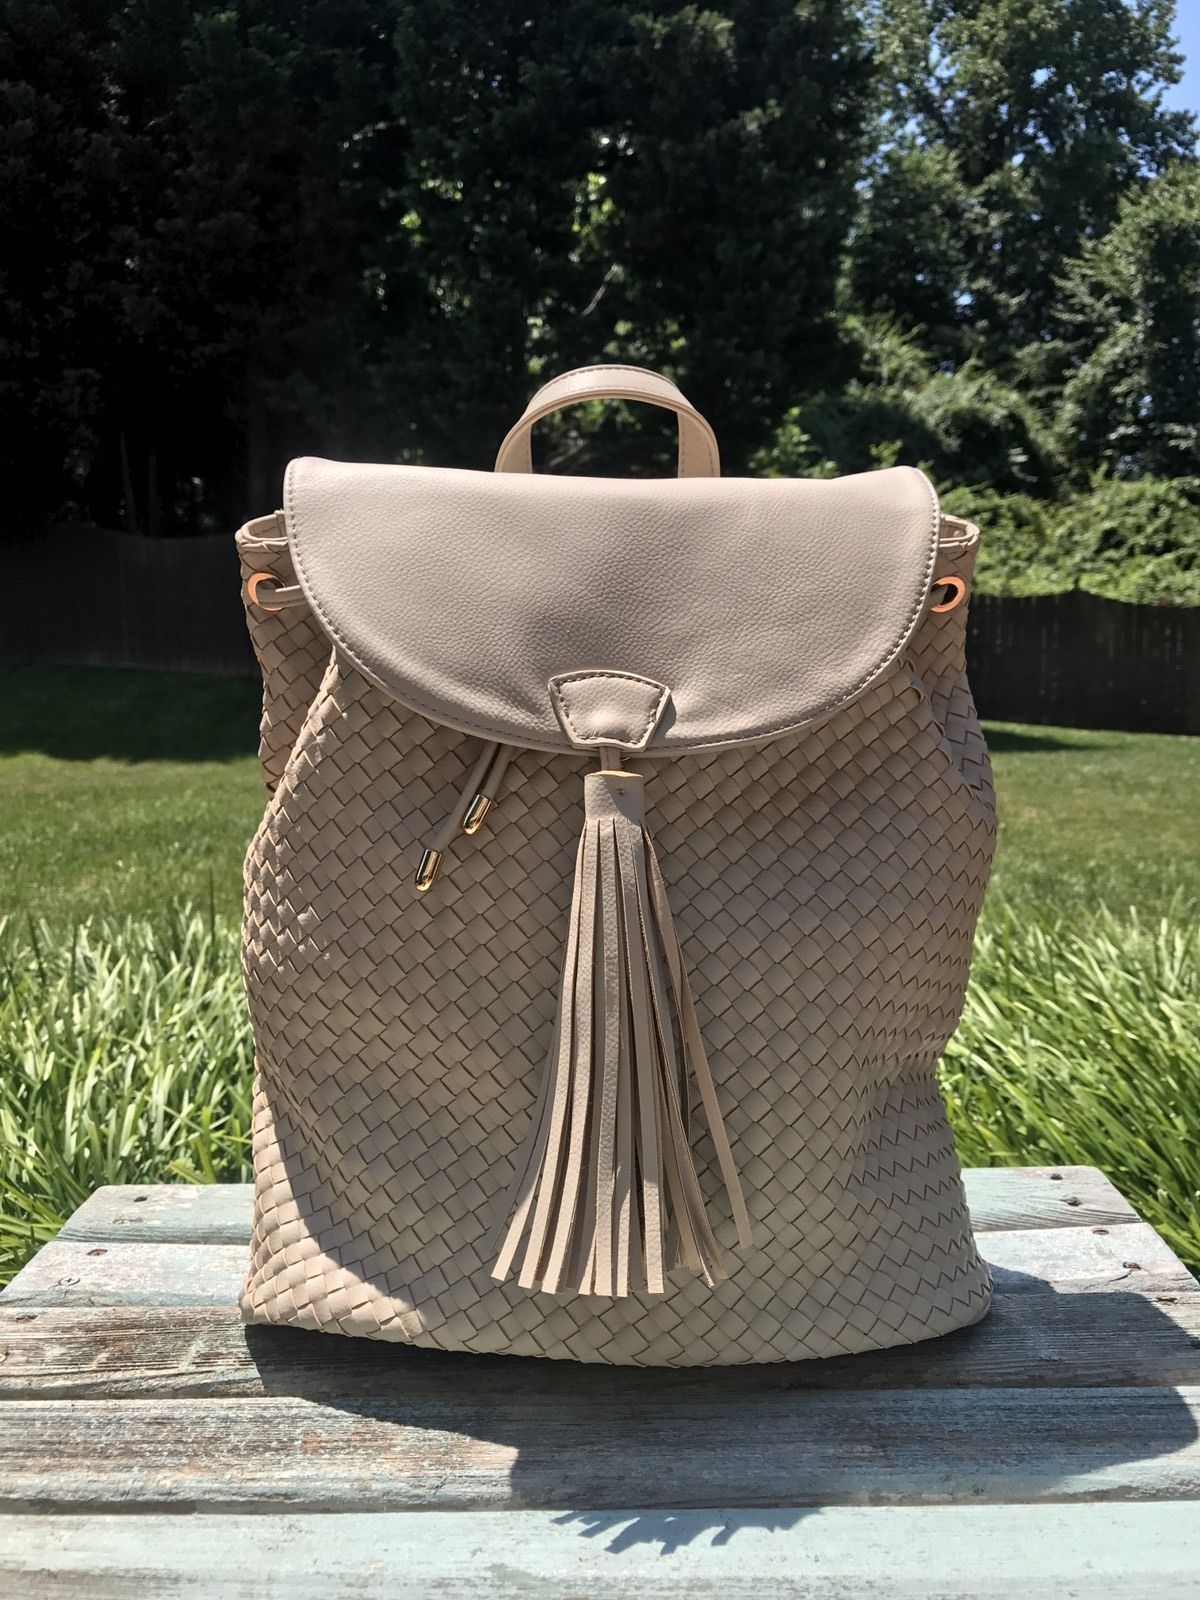 Deux Lux Luxury Bowery Backpack Camel/Off-White/Cream $130 NEW with tags NWT